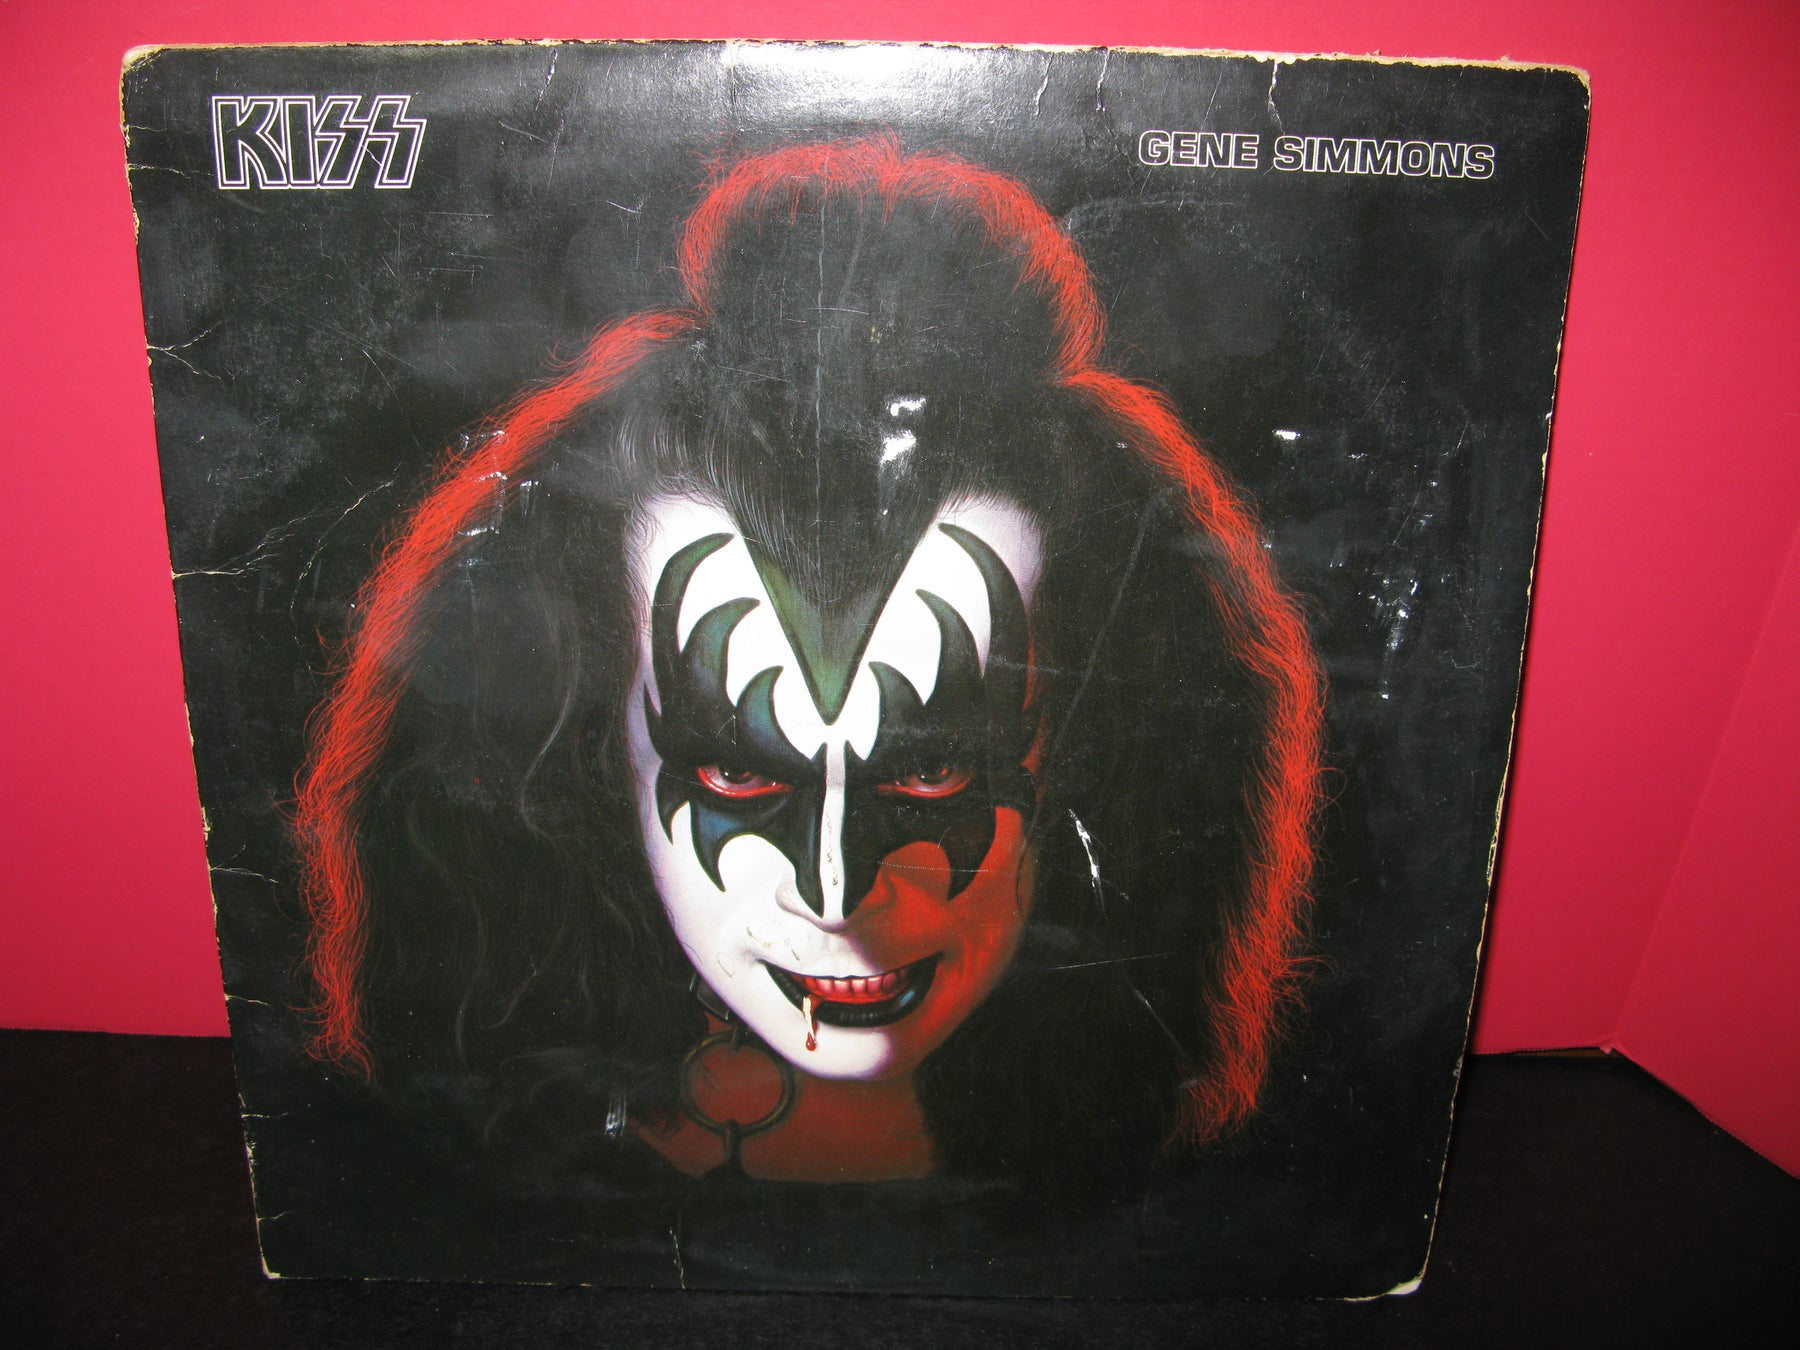 Kiss Gene Simmons Vinyl Record